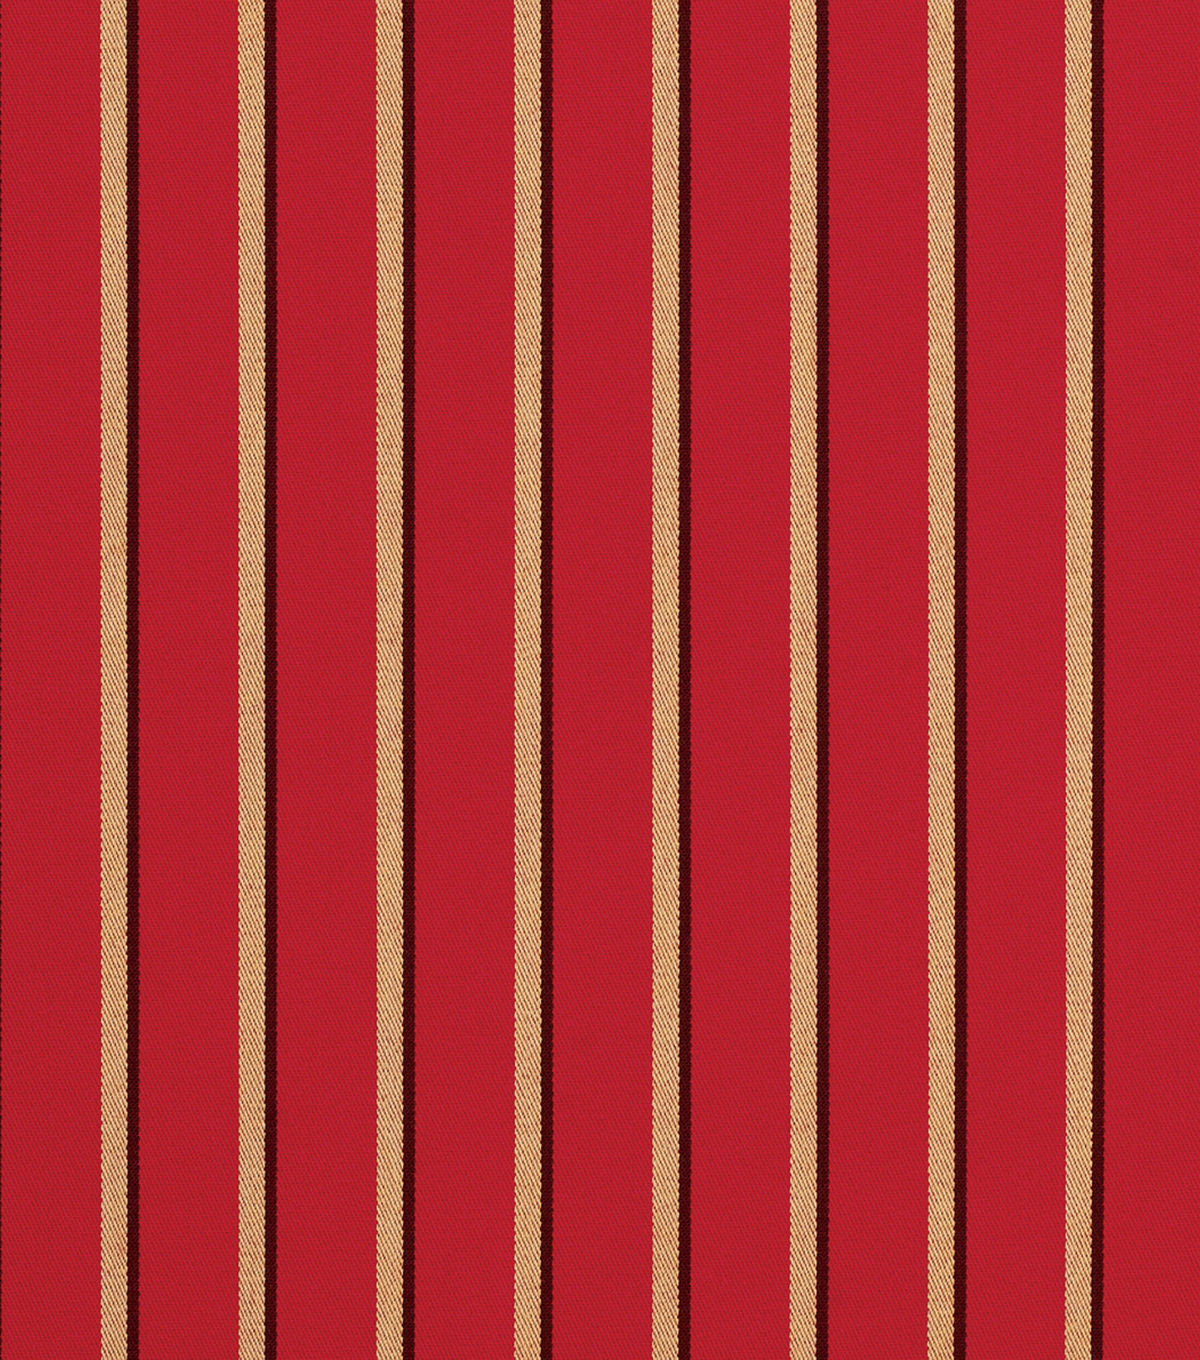 Sunbr Furn Stripes Harwood 5603 Cr Swatch